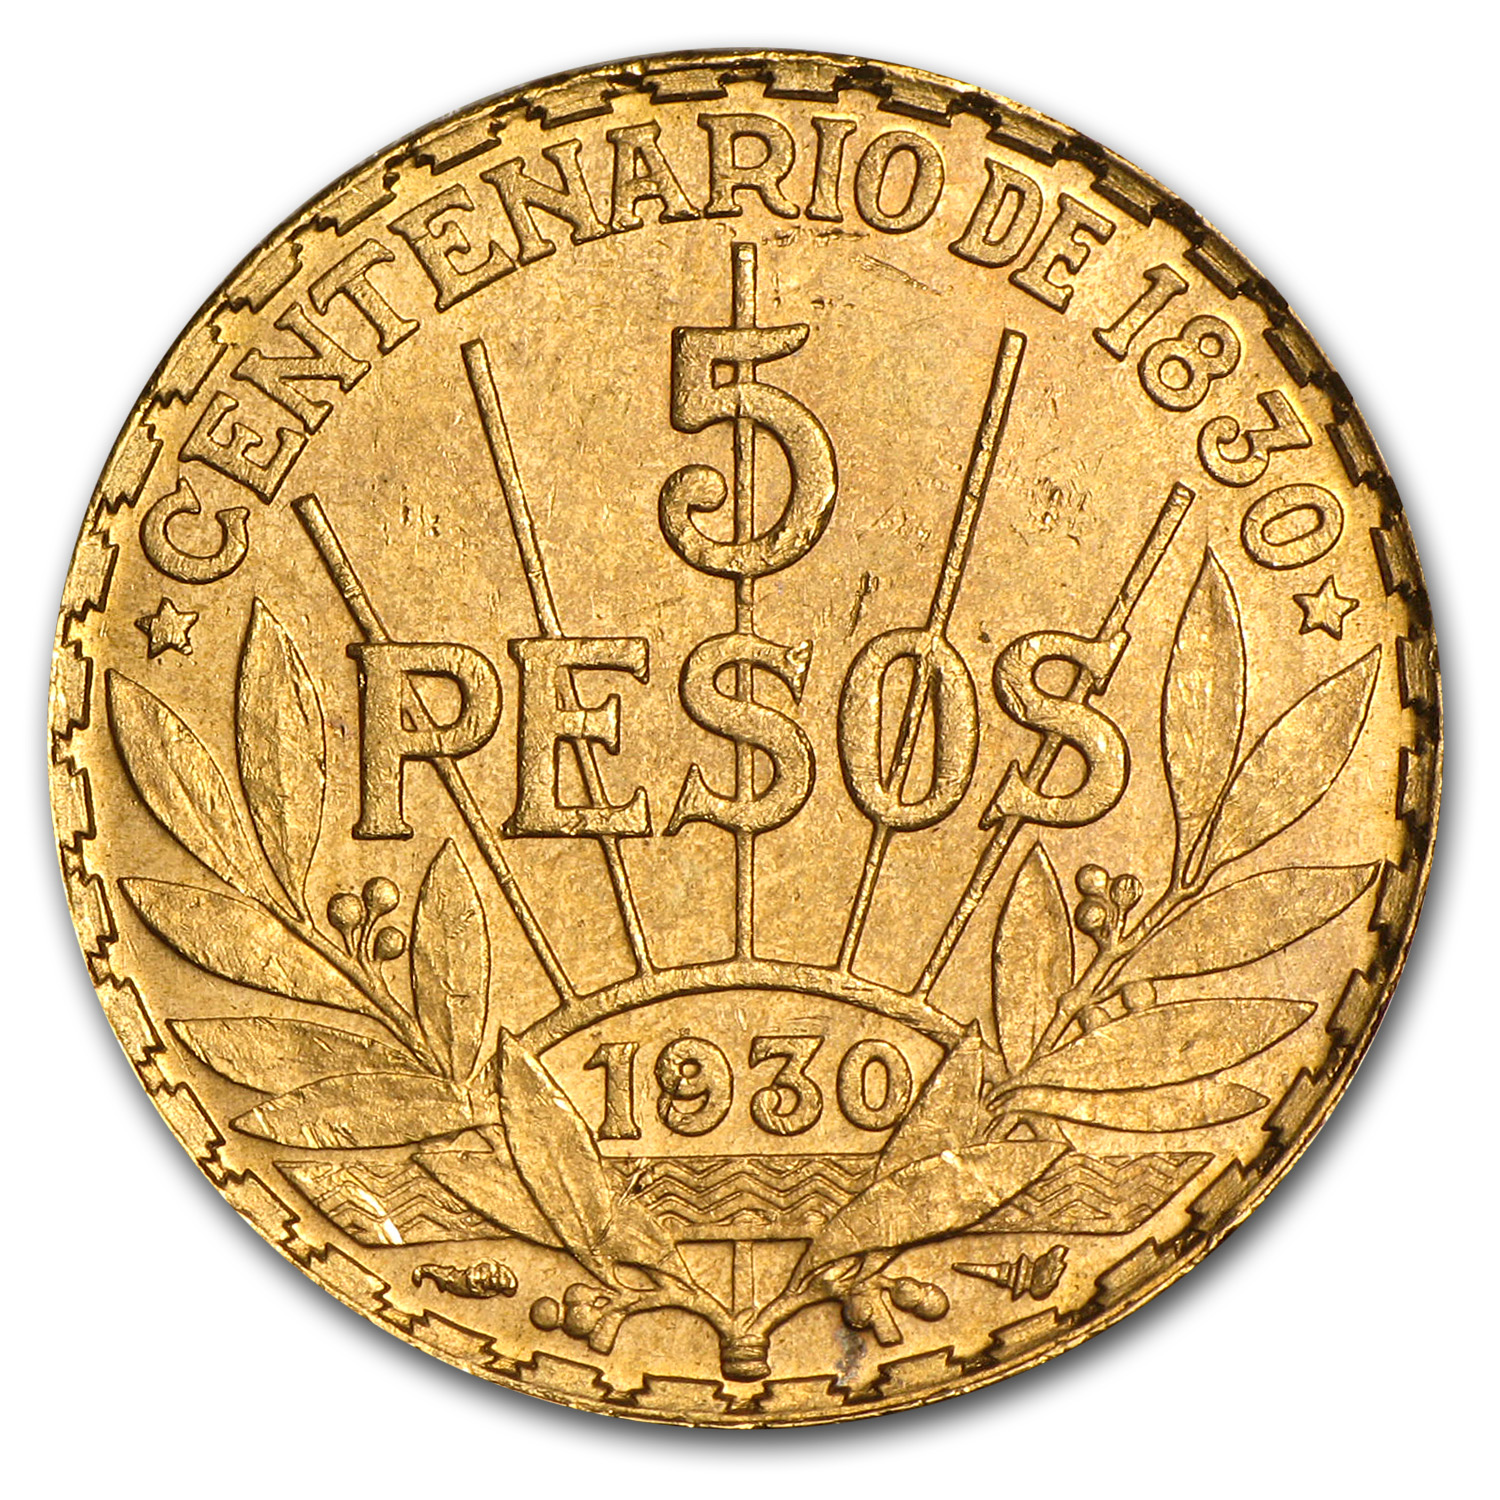 1930 Uruguay Gold 5 Pesos Au Agw 2501 Gold Coins From